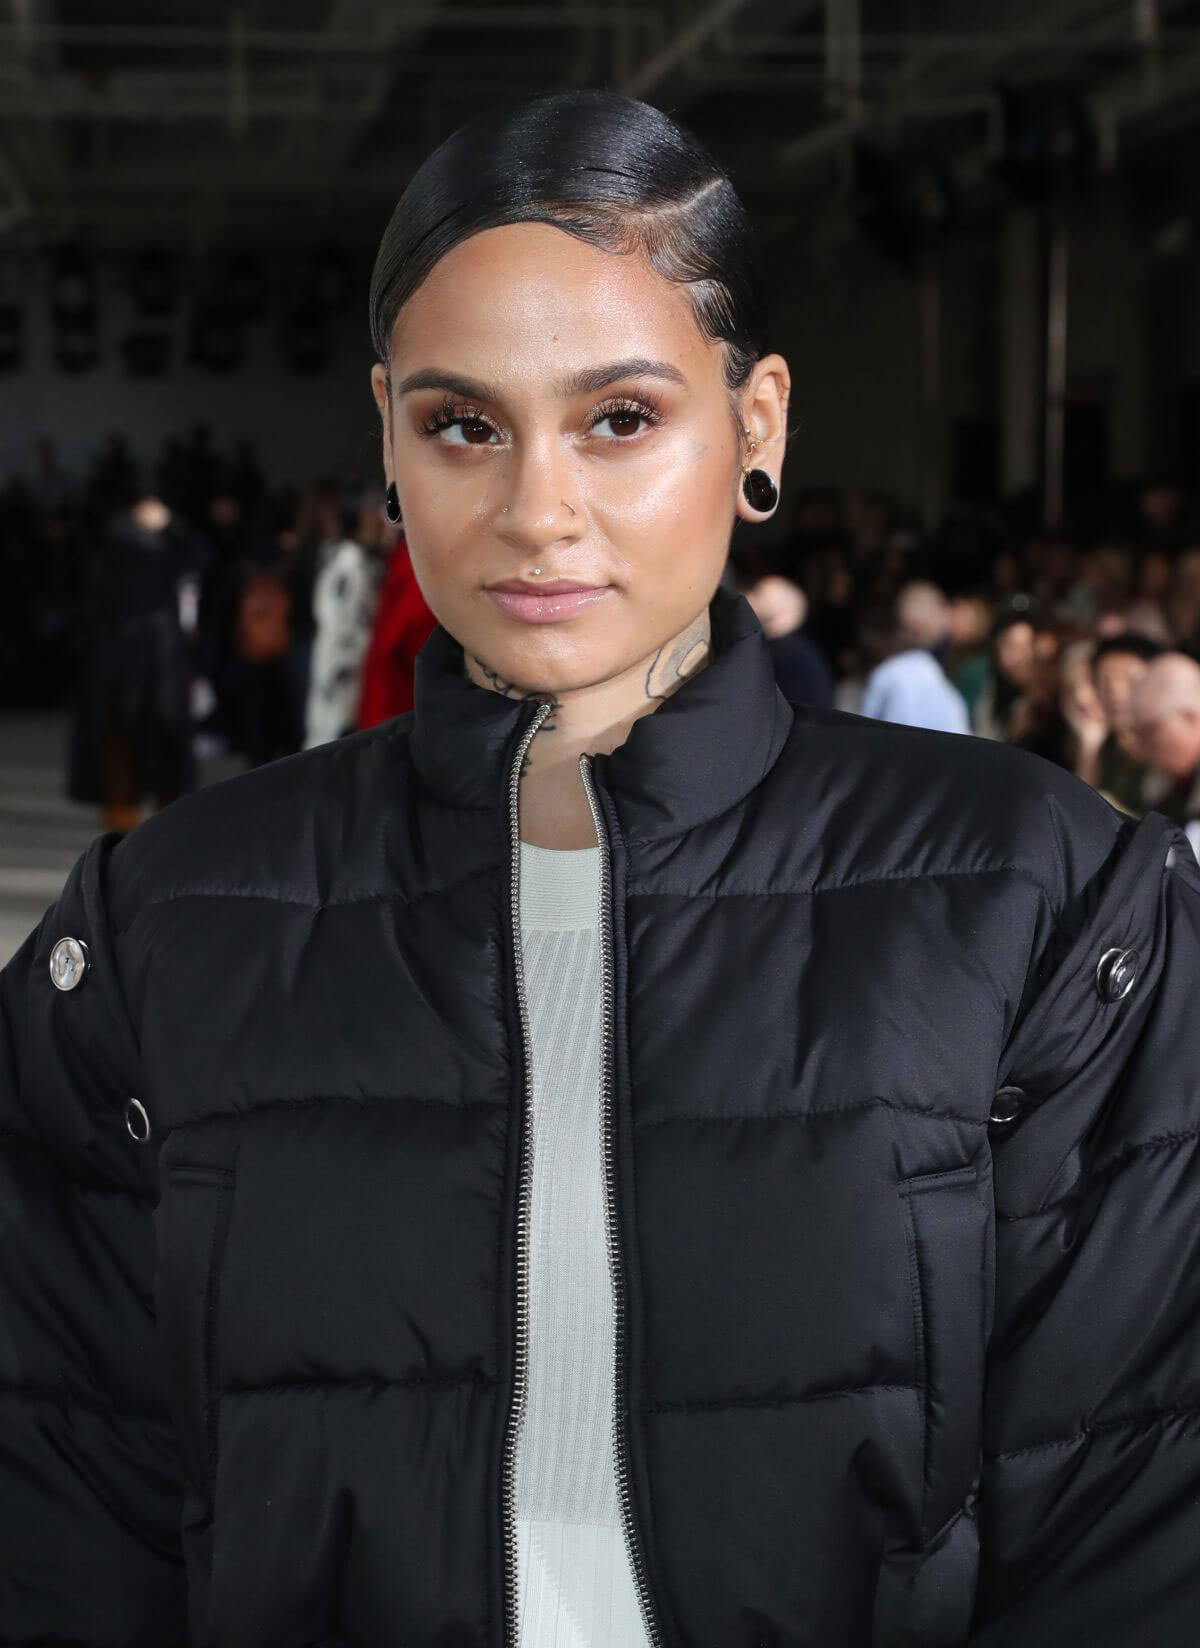 Kehlani Stills at 3.1 Phillip Lim Show at New York Fashion Week 2018/02/12